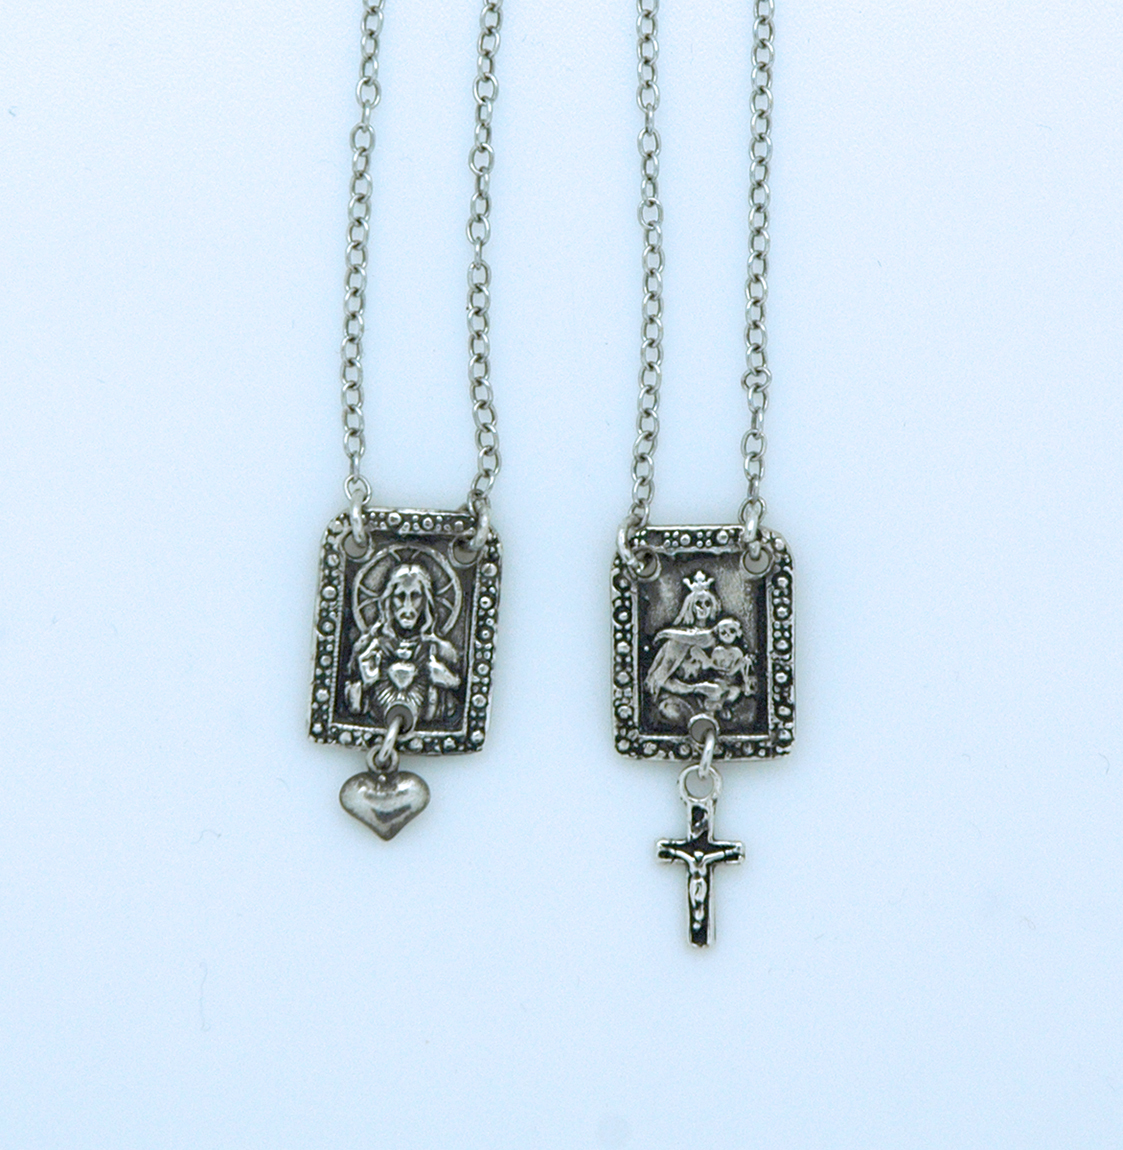 SSN83 - Sterling Silver Scapular with Cross & Heart, 11/16 in. Medals